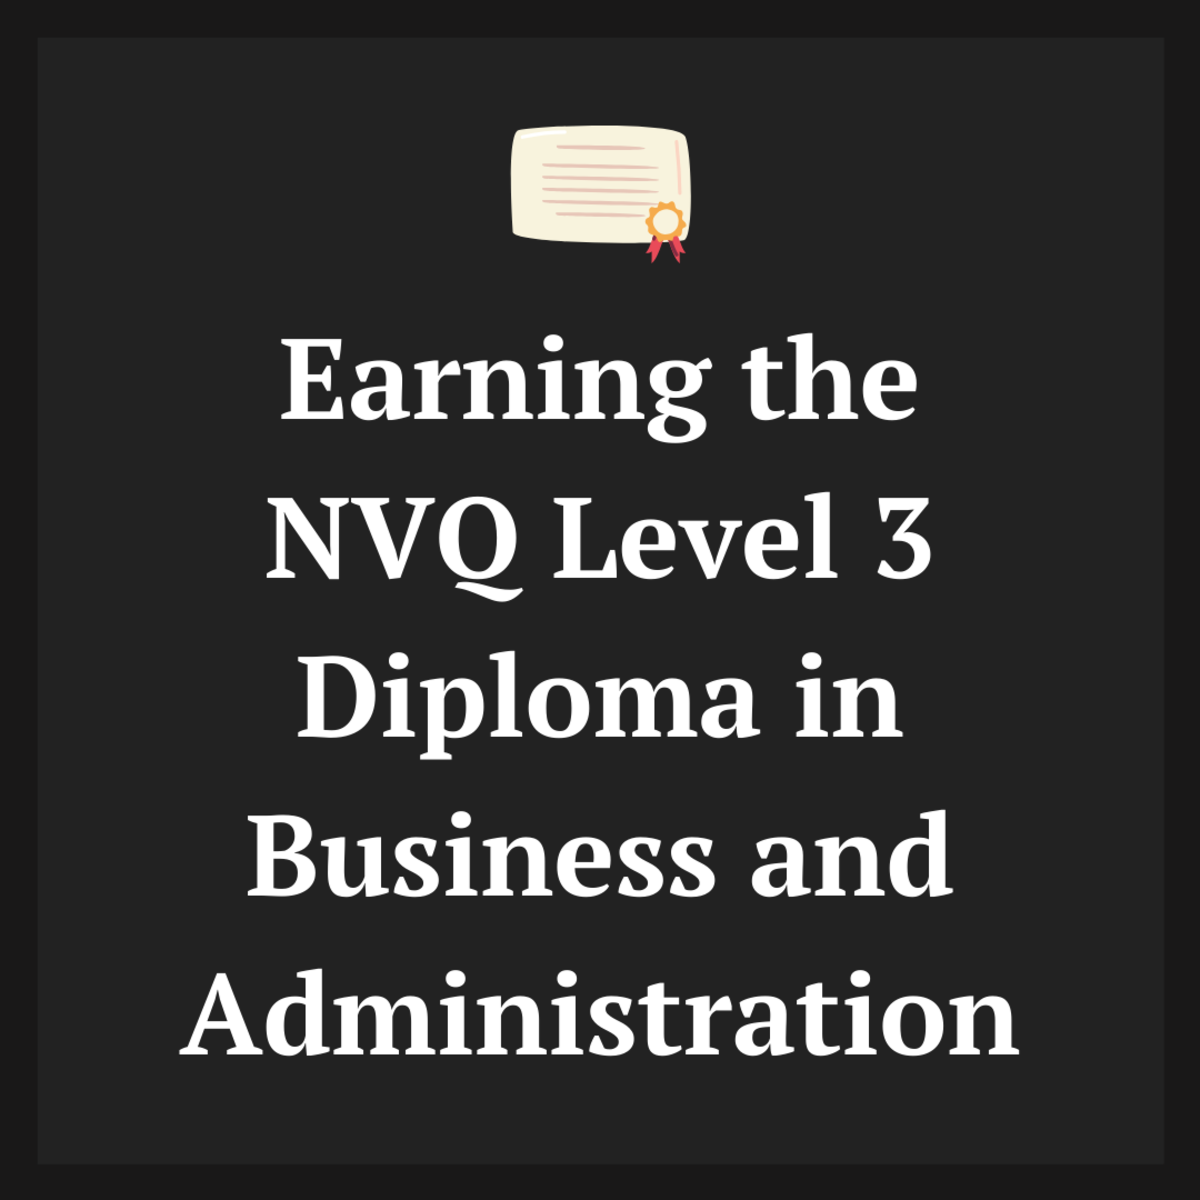 Learn about my experience earning the NVQ Level 3 Diploma, and get an idea of what to expect if you pursue this diploma.